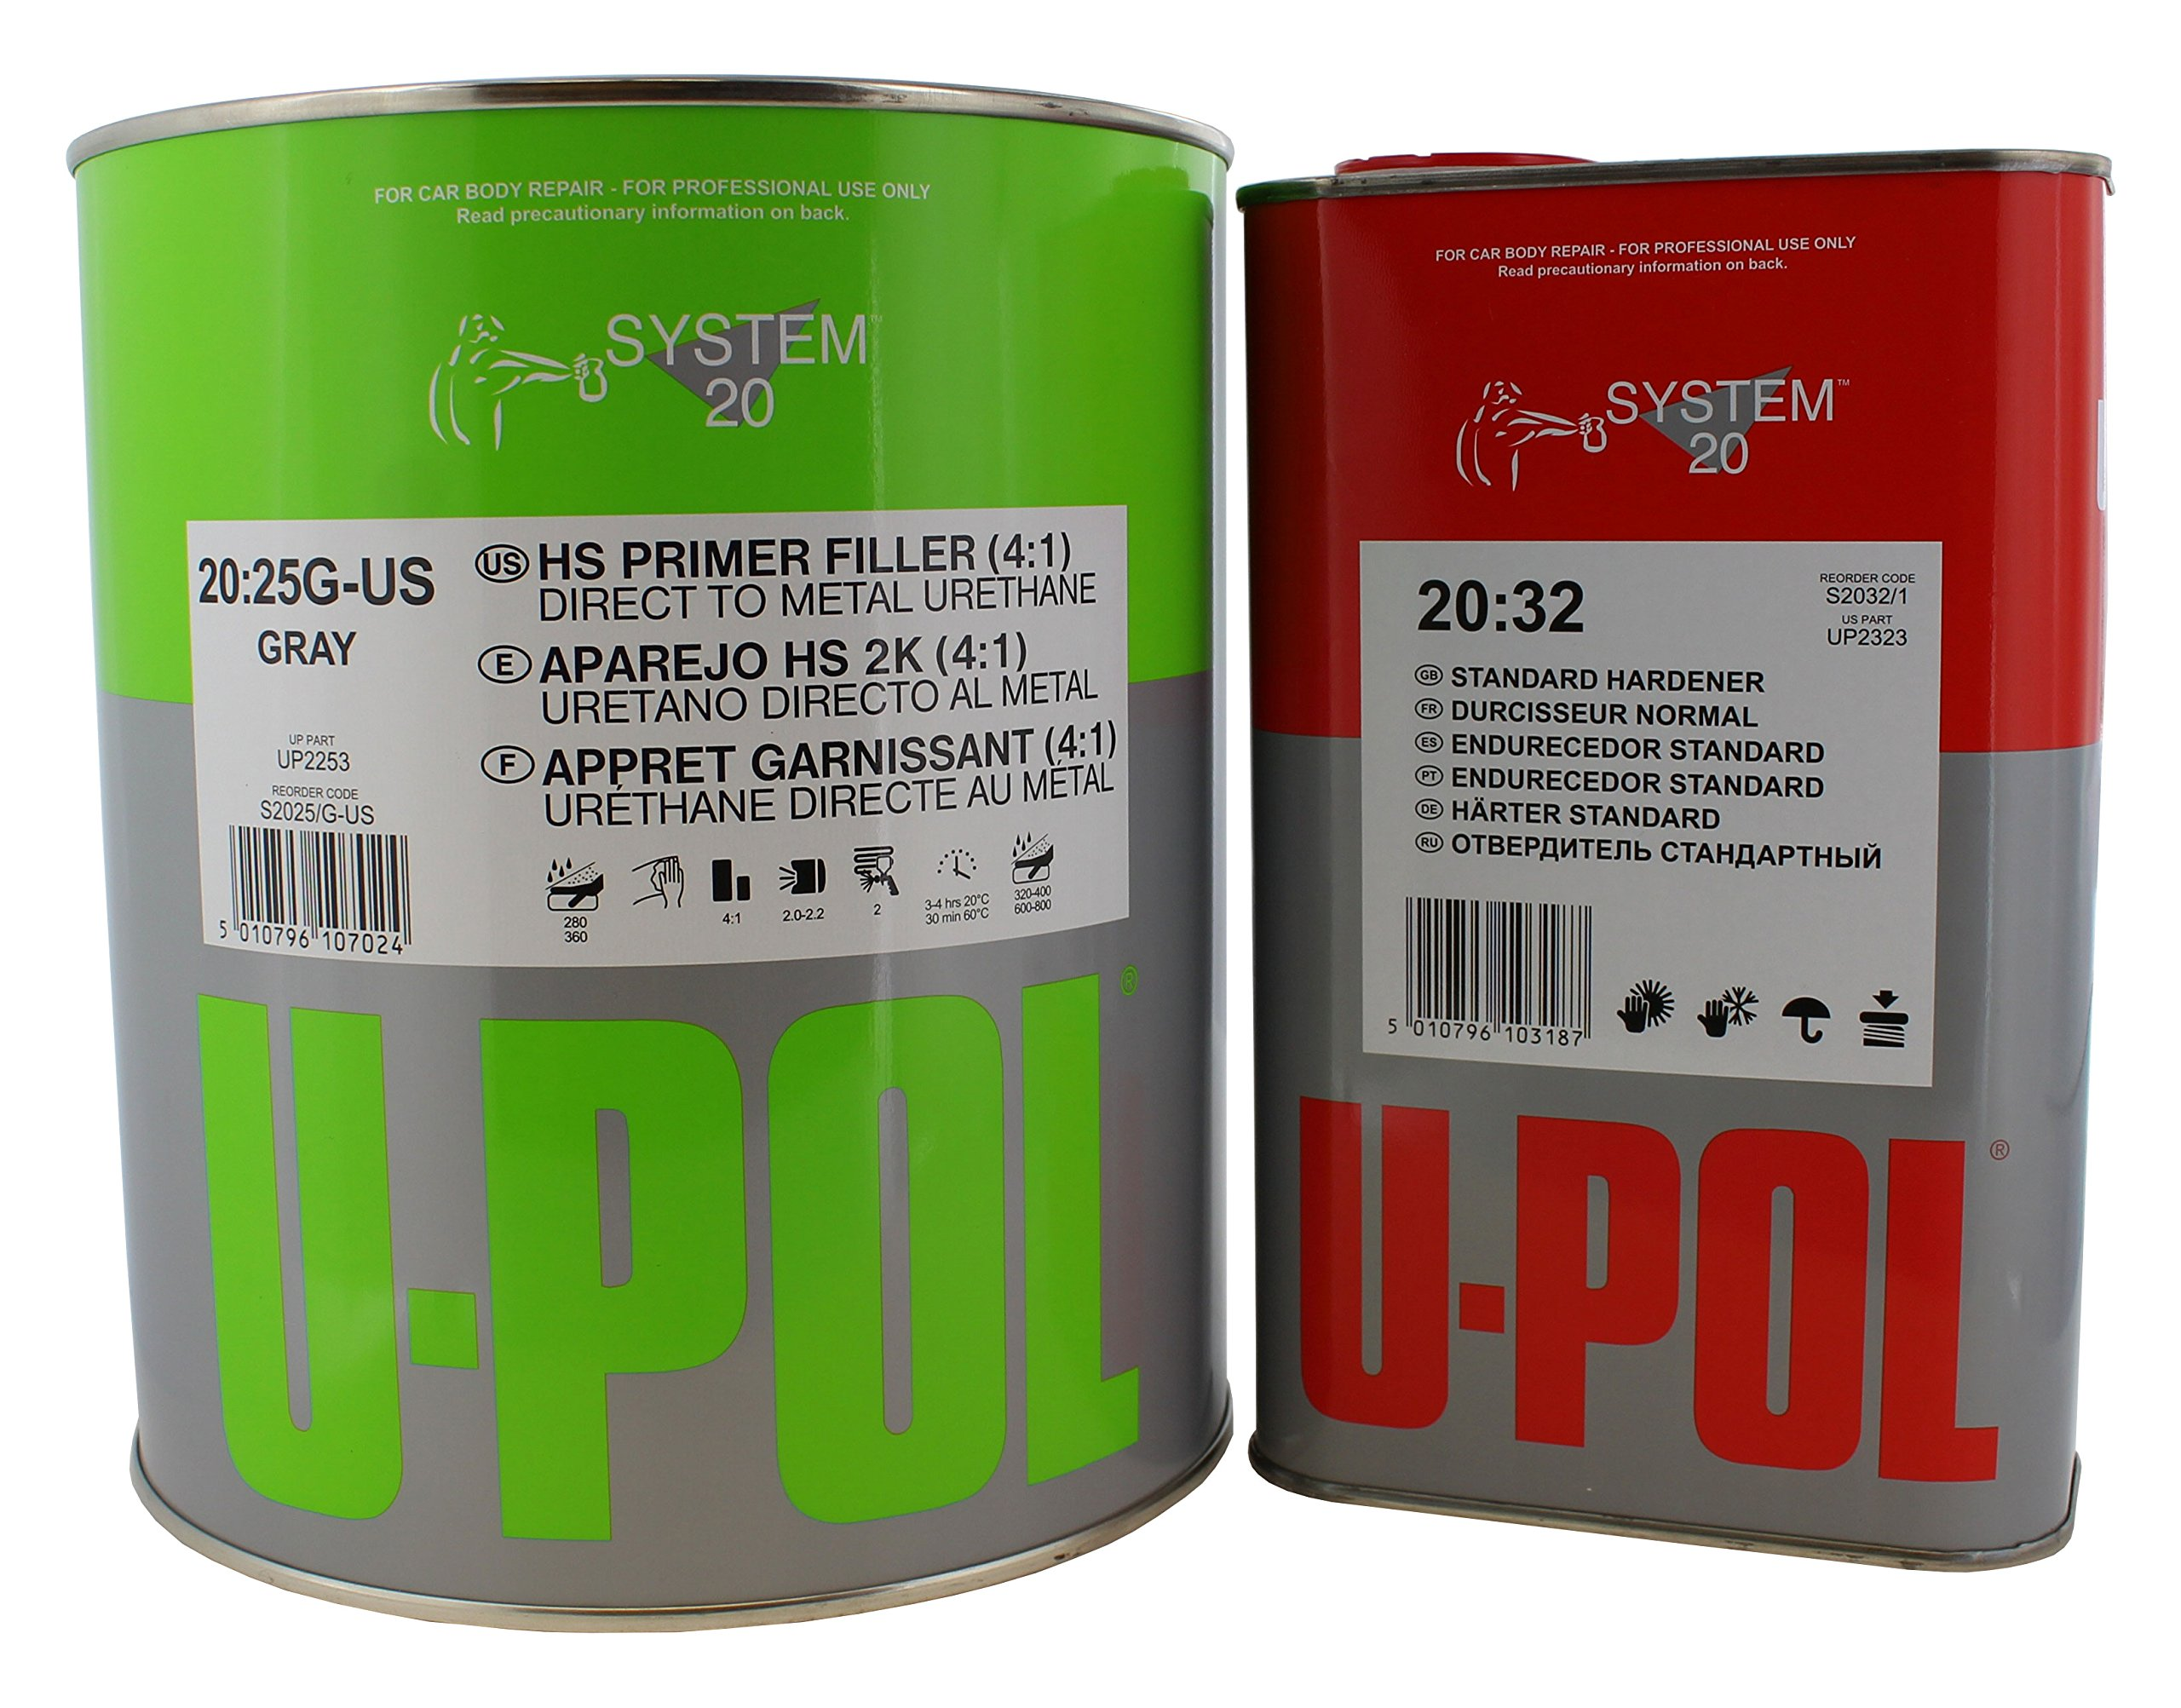 U-POL 1 Gallon (4.2 VOC) High Solids High Build Urethane Primer Kit with Standard (60 to 95 F) Temperature Hardener by U-Pol